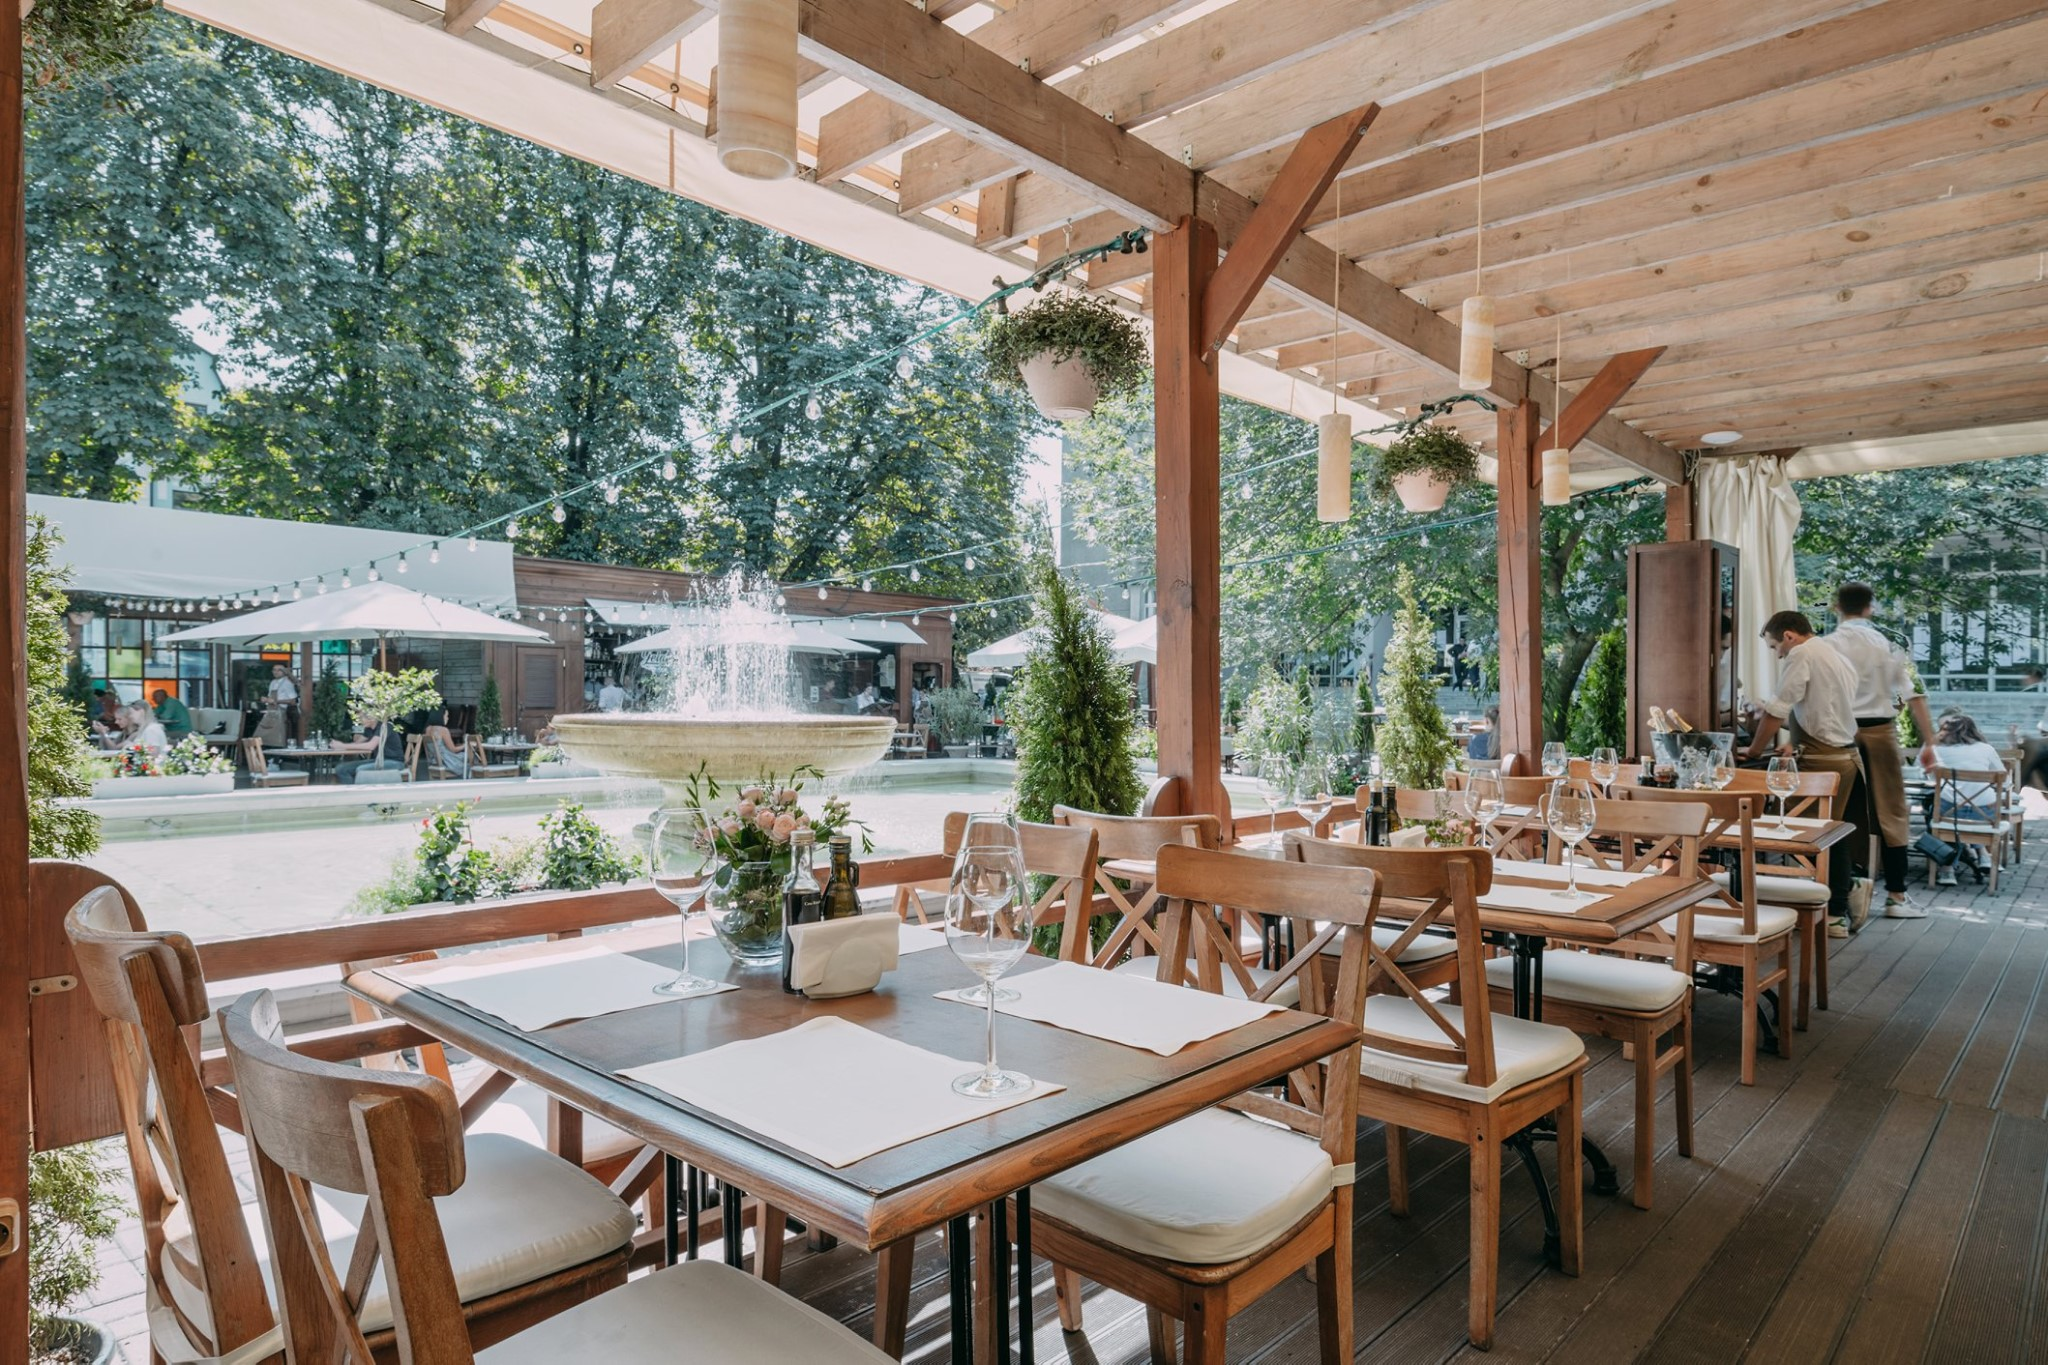 Restaurant Vero Vero In Kyiv Vul Іllіnska 18 Menu Table Reservation Prices And Reviews Tomato Ua